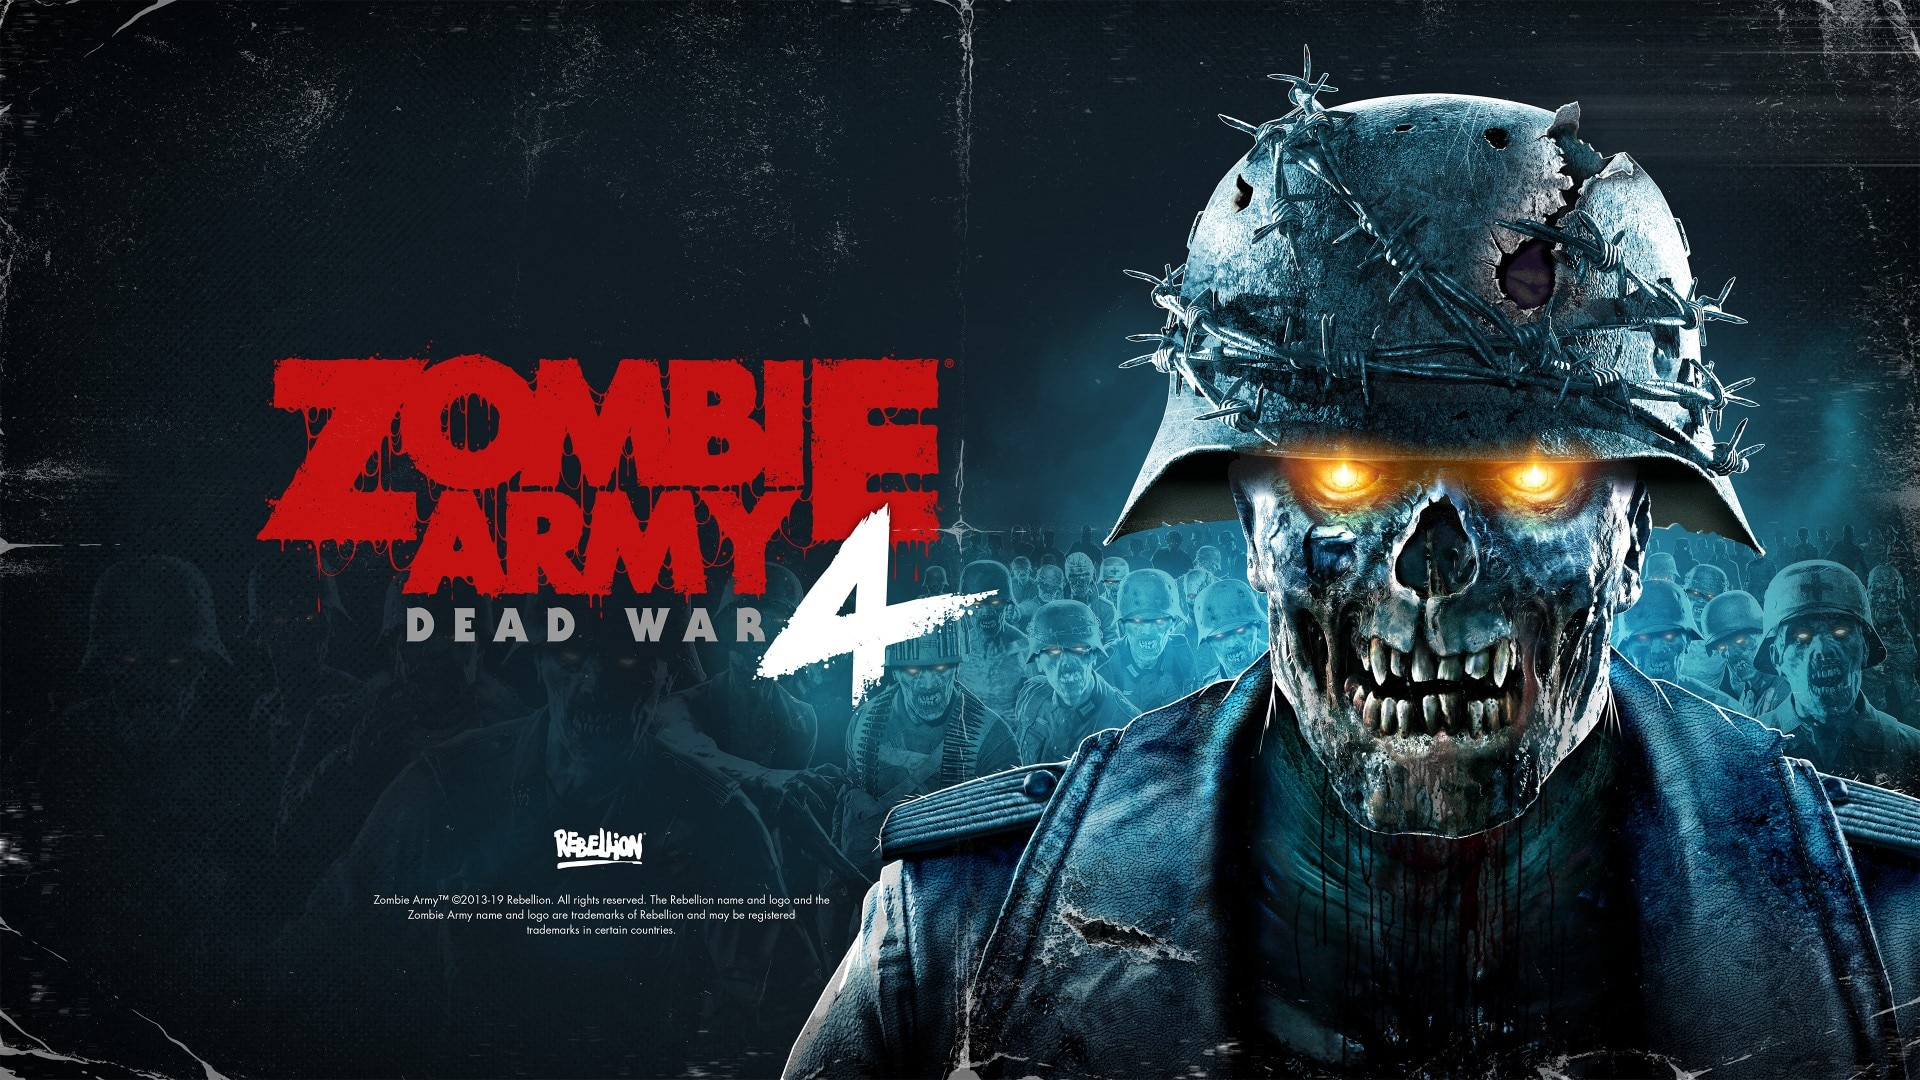 Zombie Army 4 - ZOMBIE ARMY 4: DEAD WAR HANDS-ON FIRST LOOK – A SMORGASBORD OF GORE AND GUNPLAY